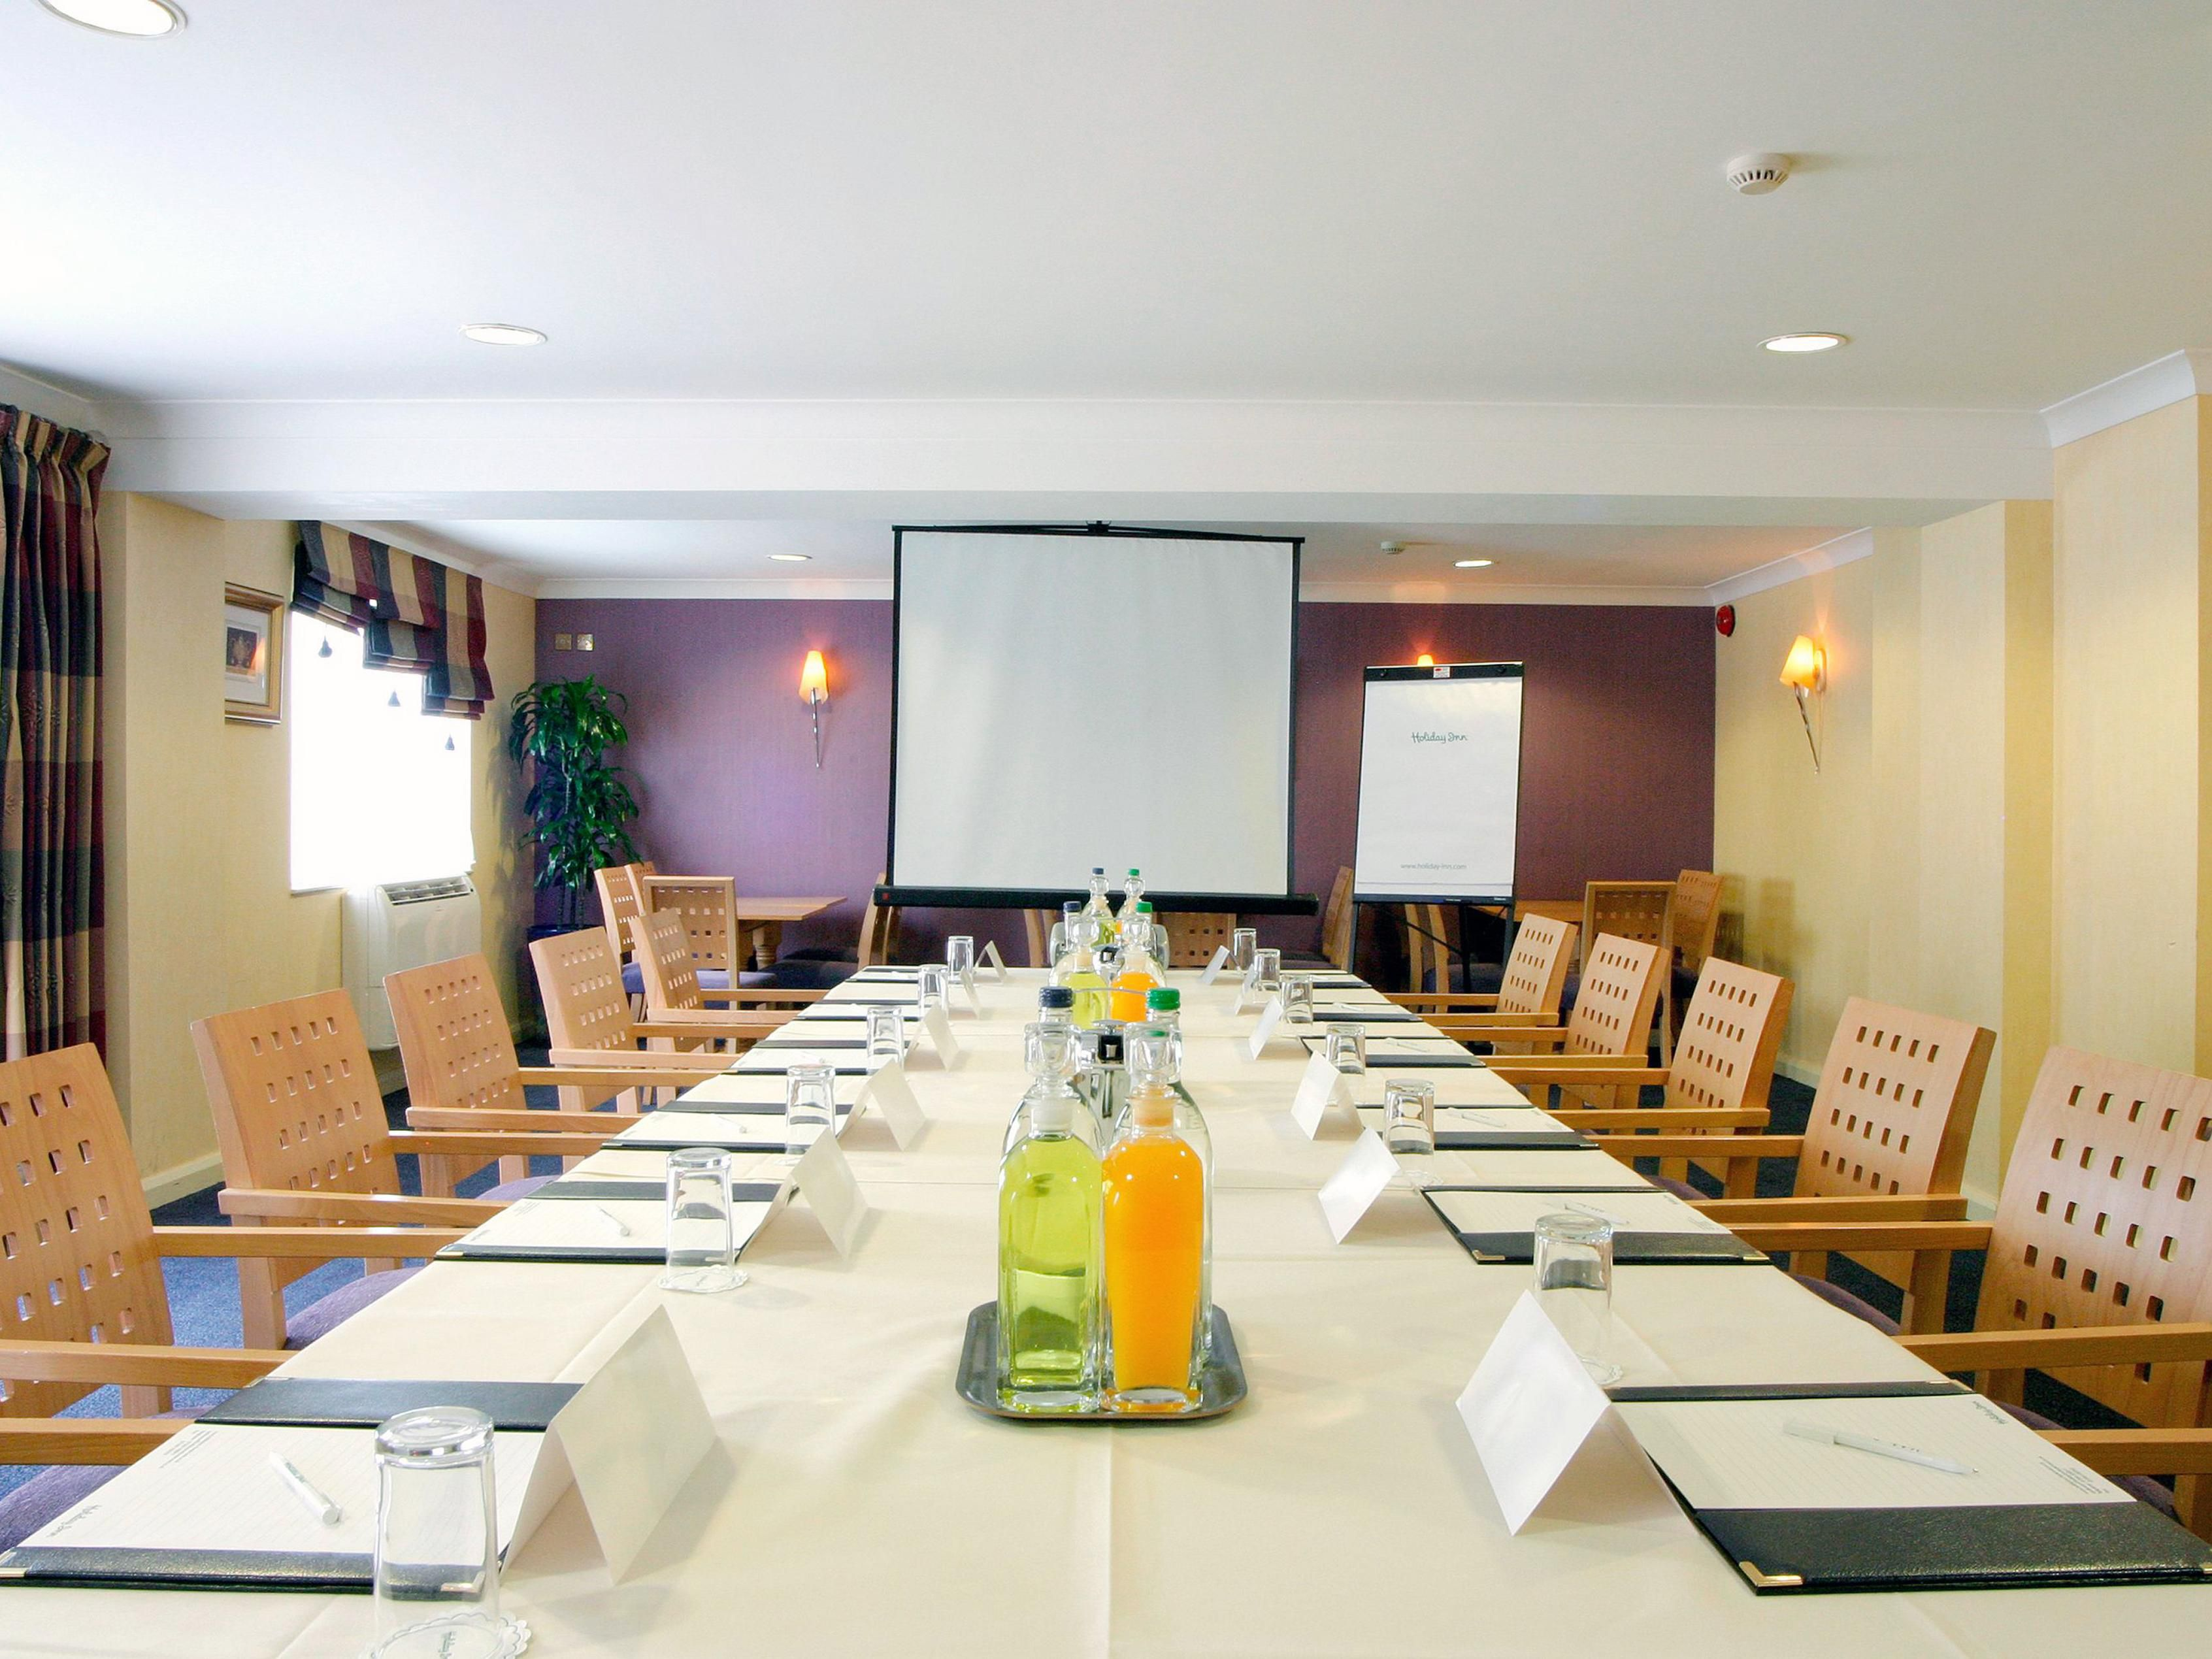 Clwyd Room set for boardroom meeting.